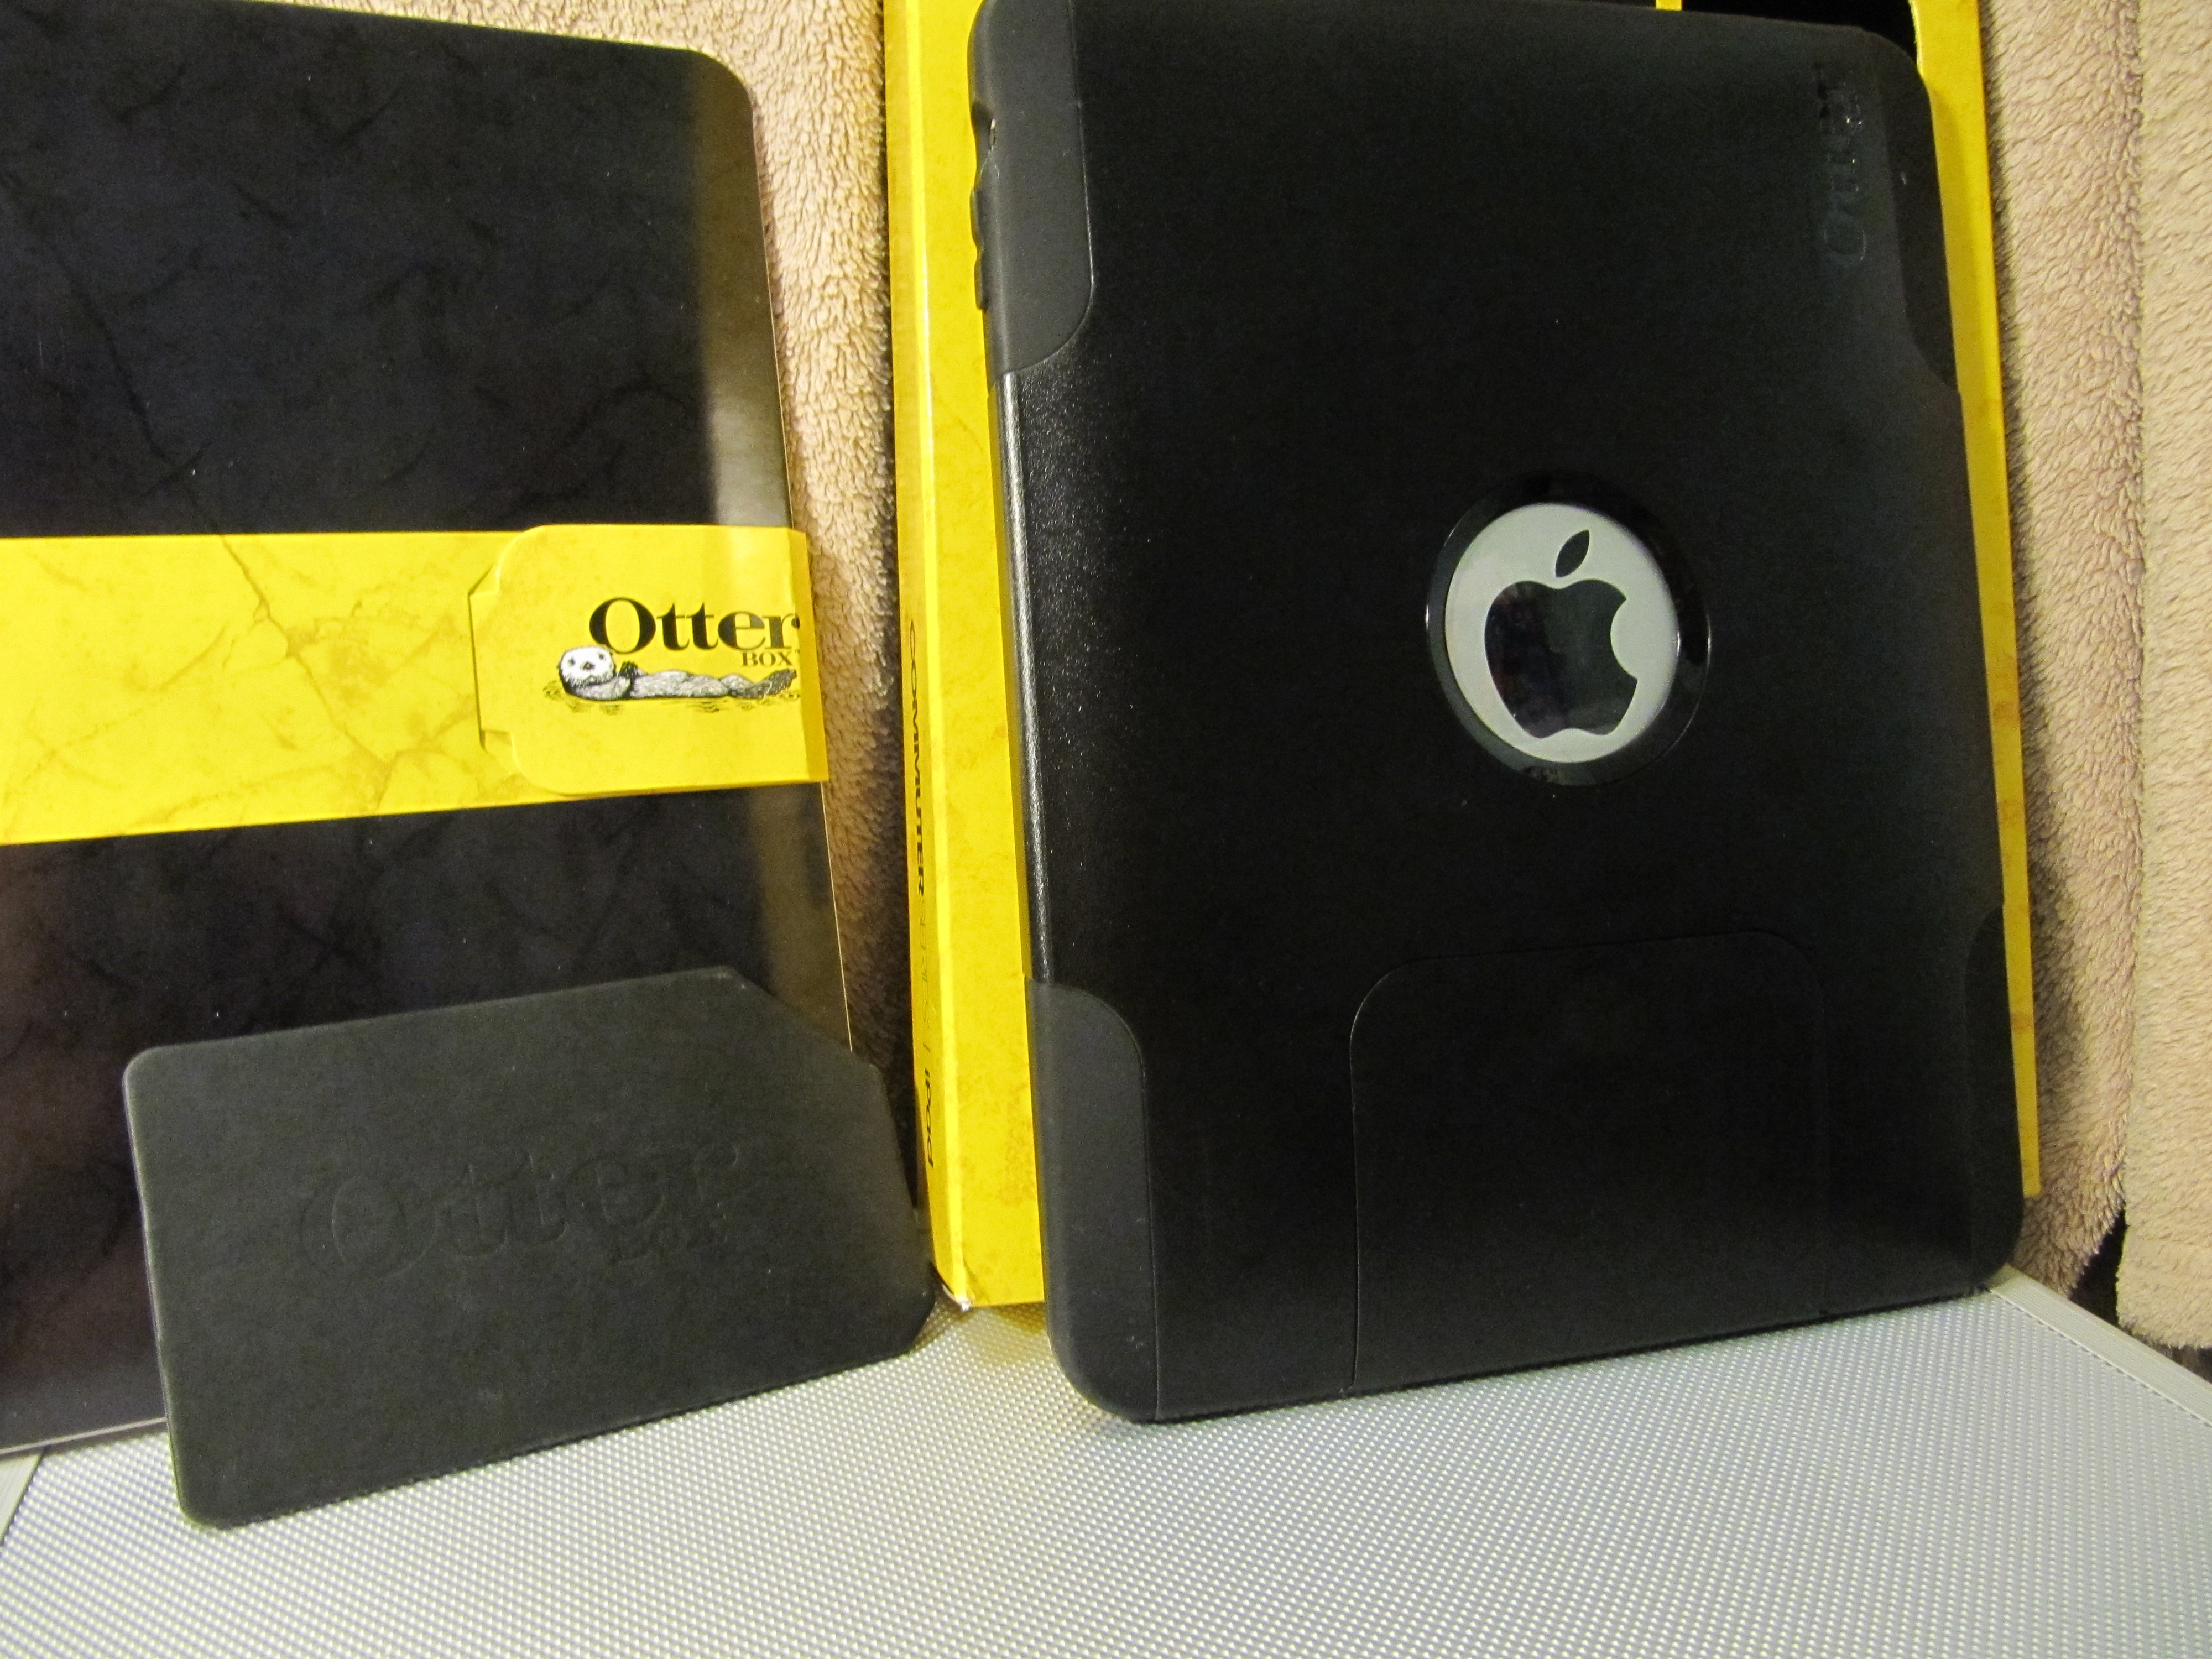 A look at the iPad Case from Otterbox!